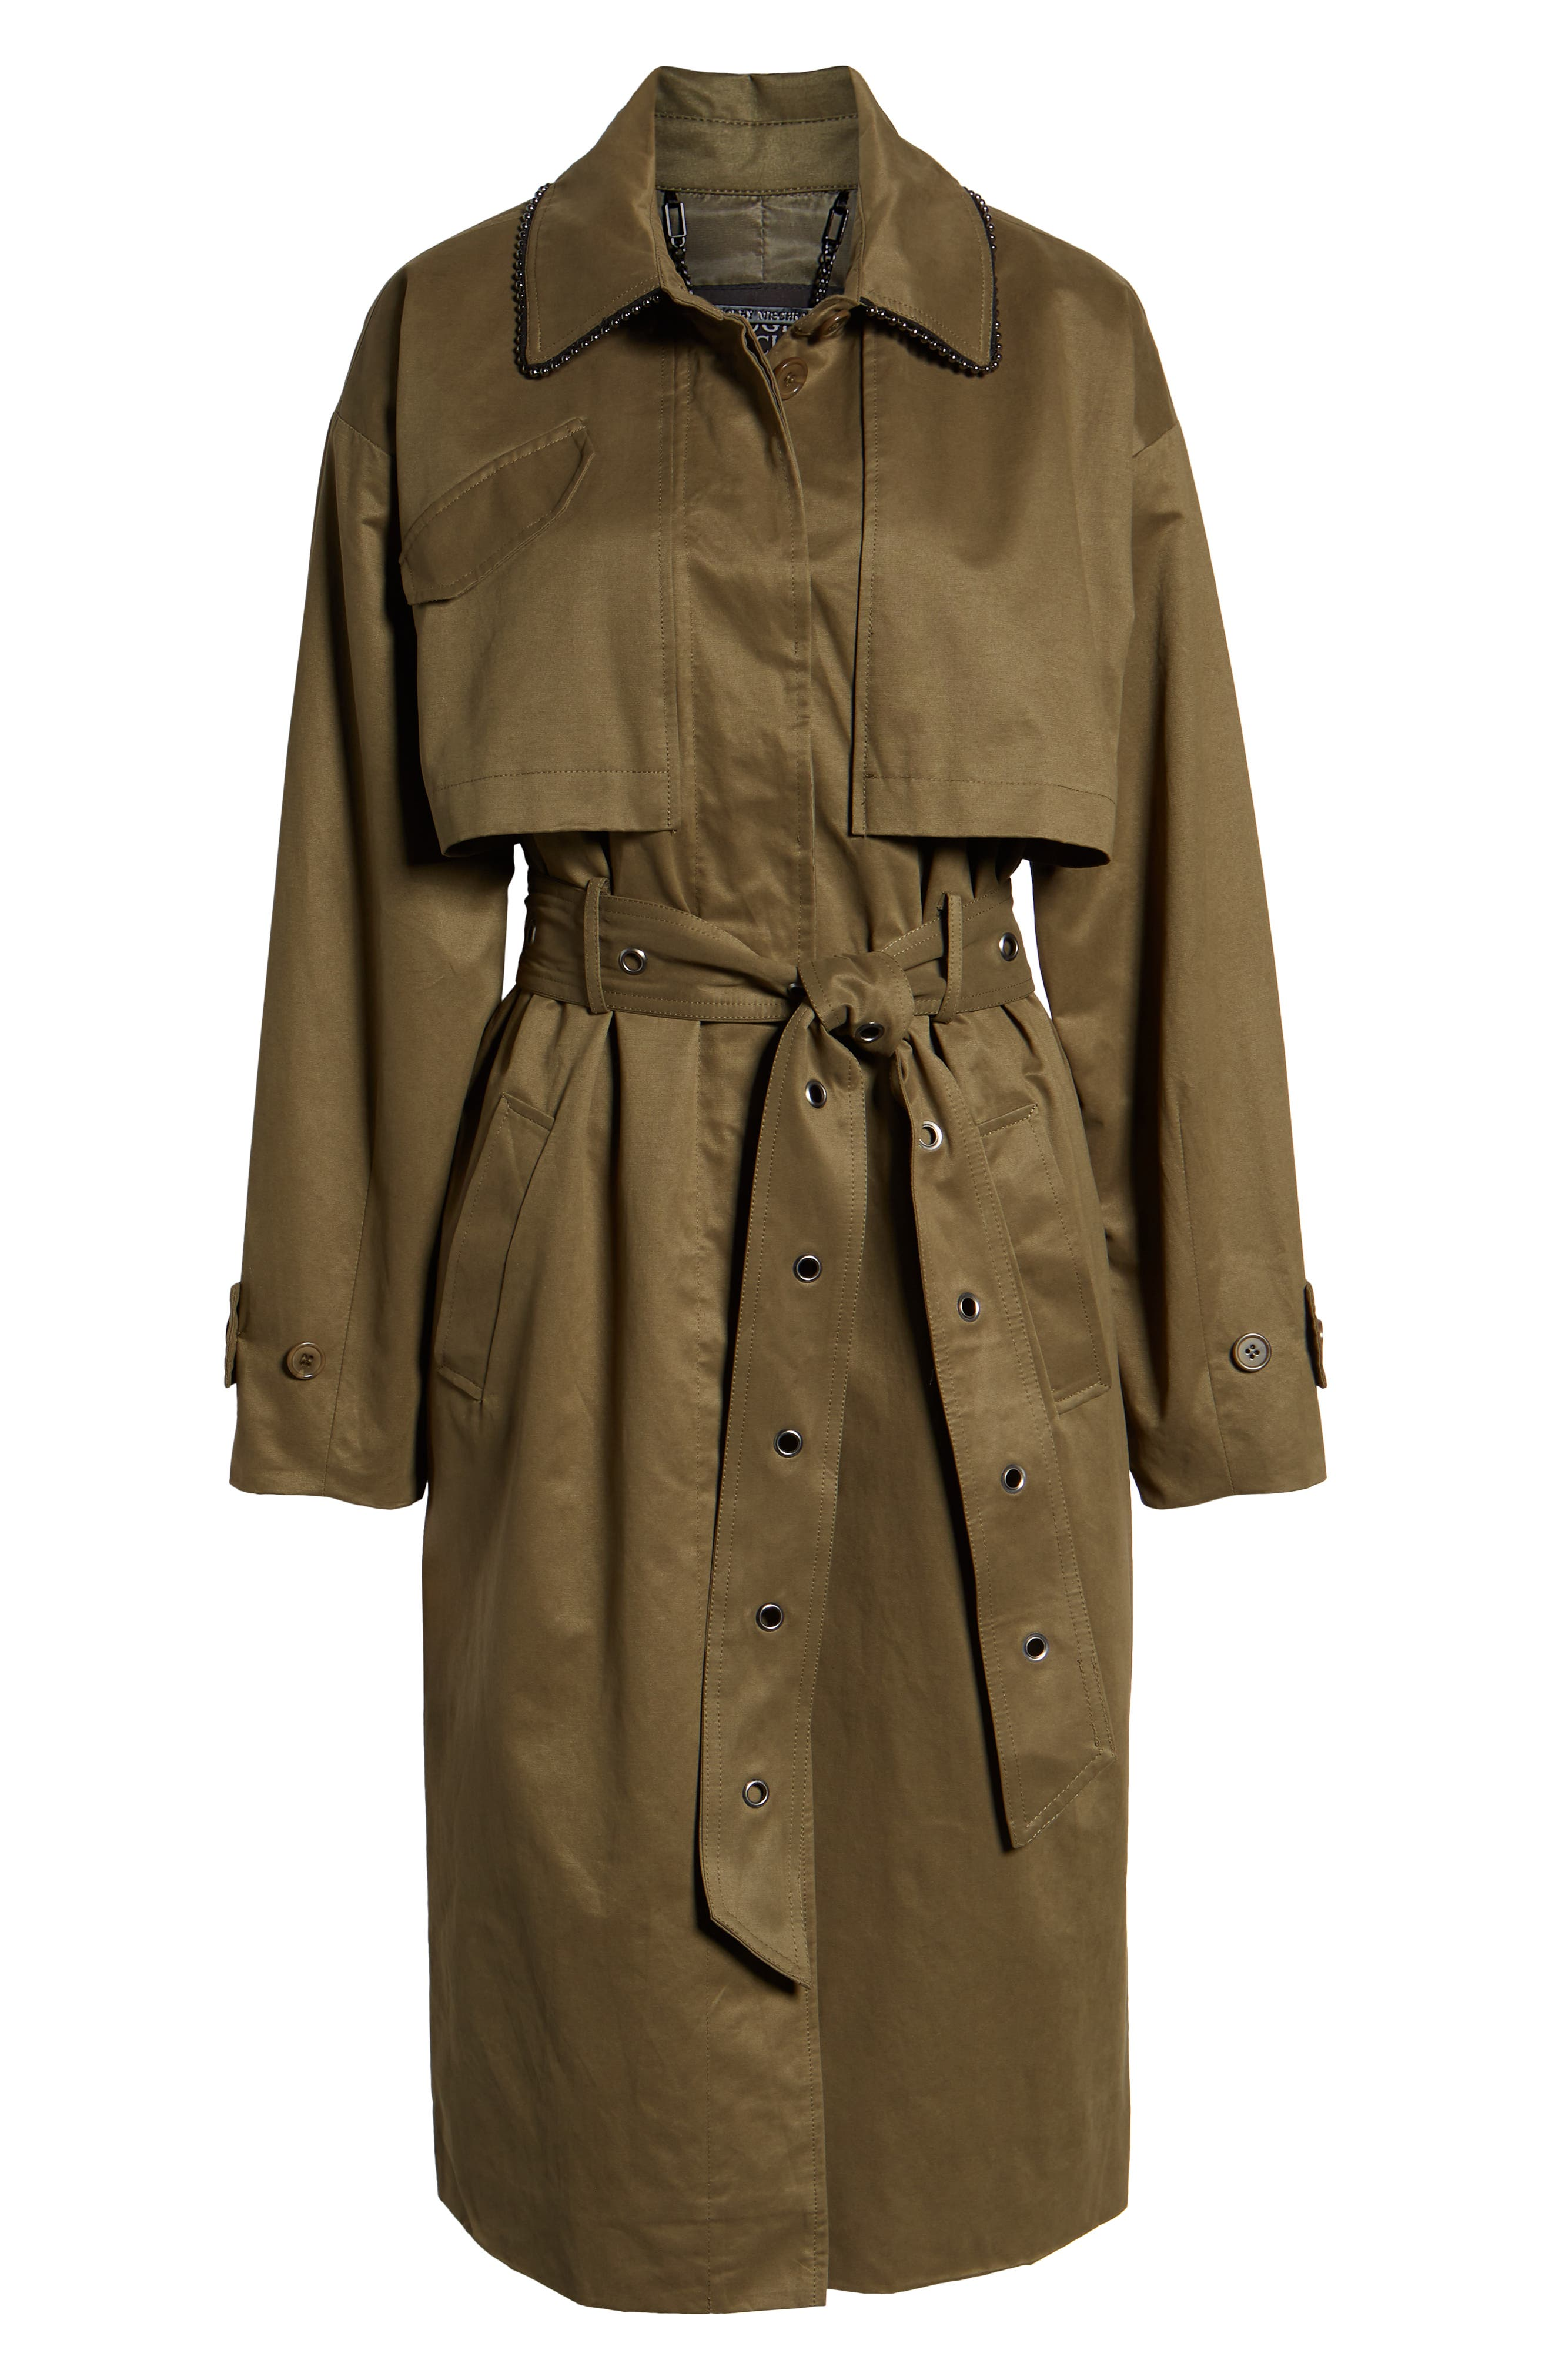 Badgley Mischka Cotton Blend Utility Trench Coat,                             Alternate thumbnail 6, color,                             301